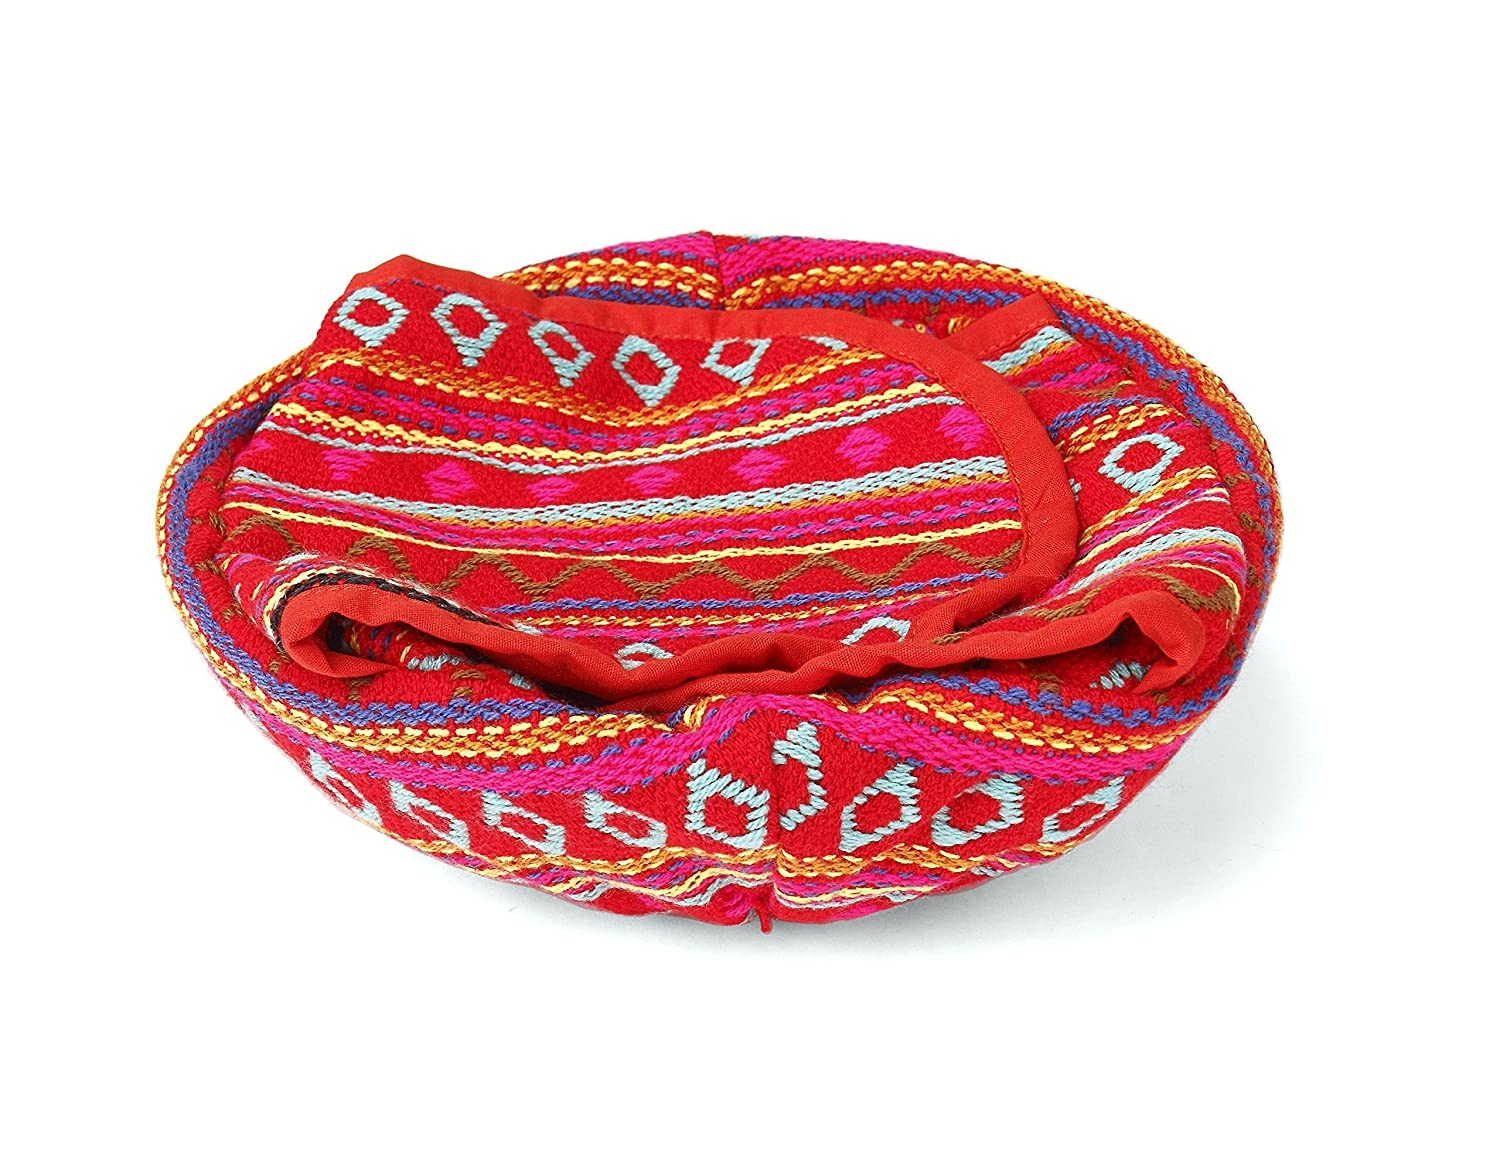 Tortilla Bread, Roti Basket, Woven - 9 Inches (Red) Holds up to 30 Tortillas